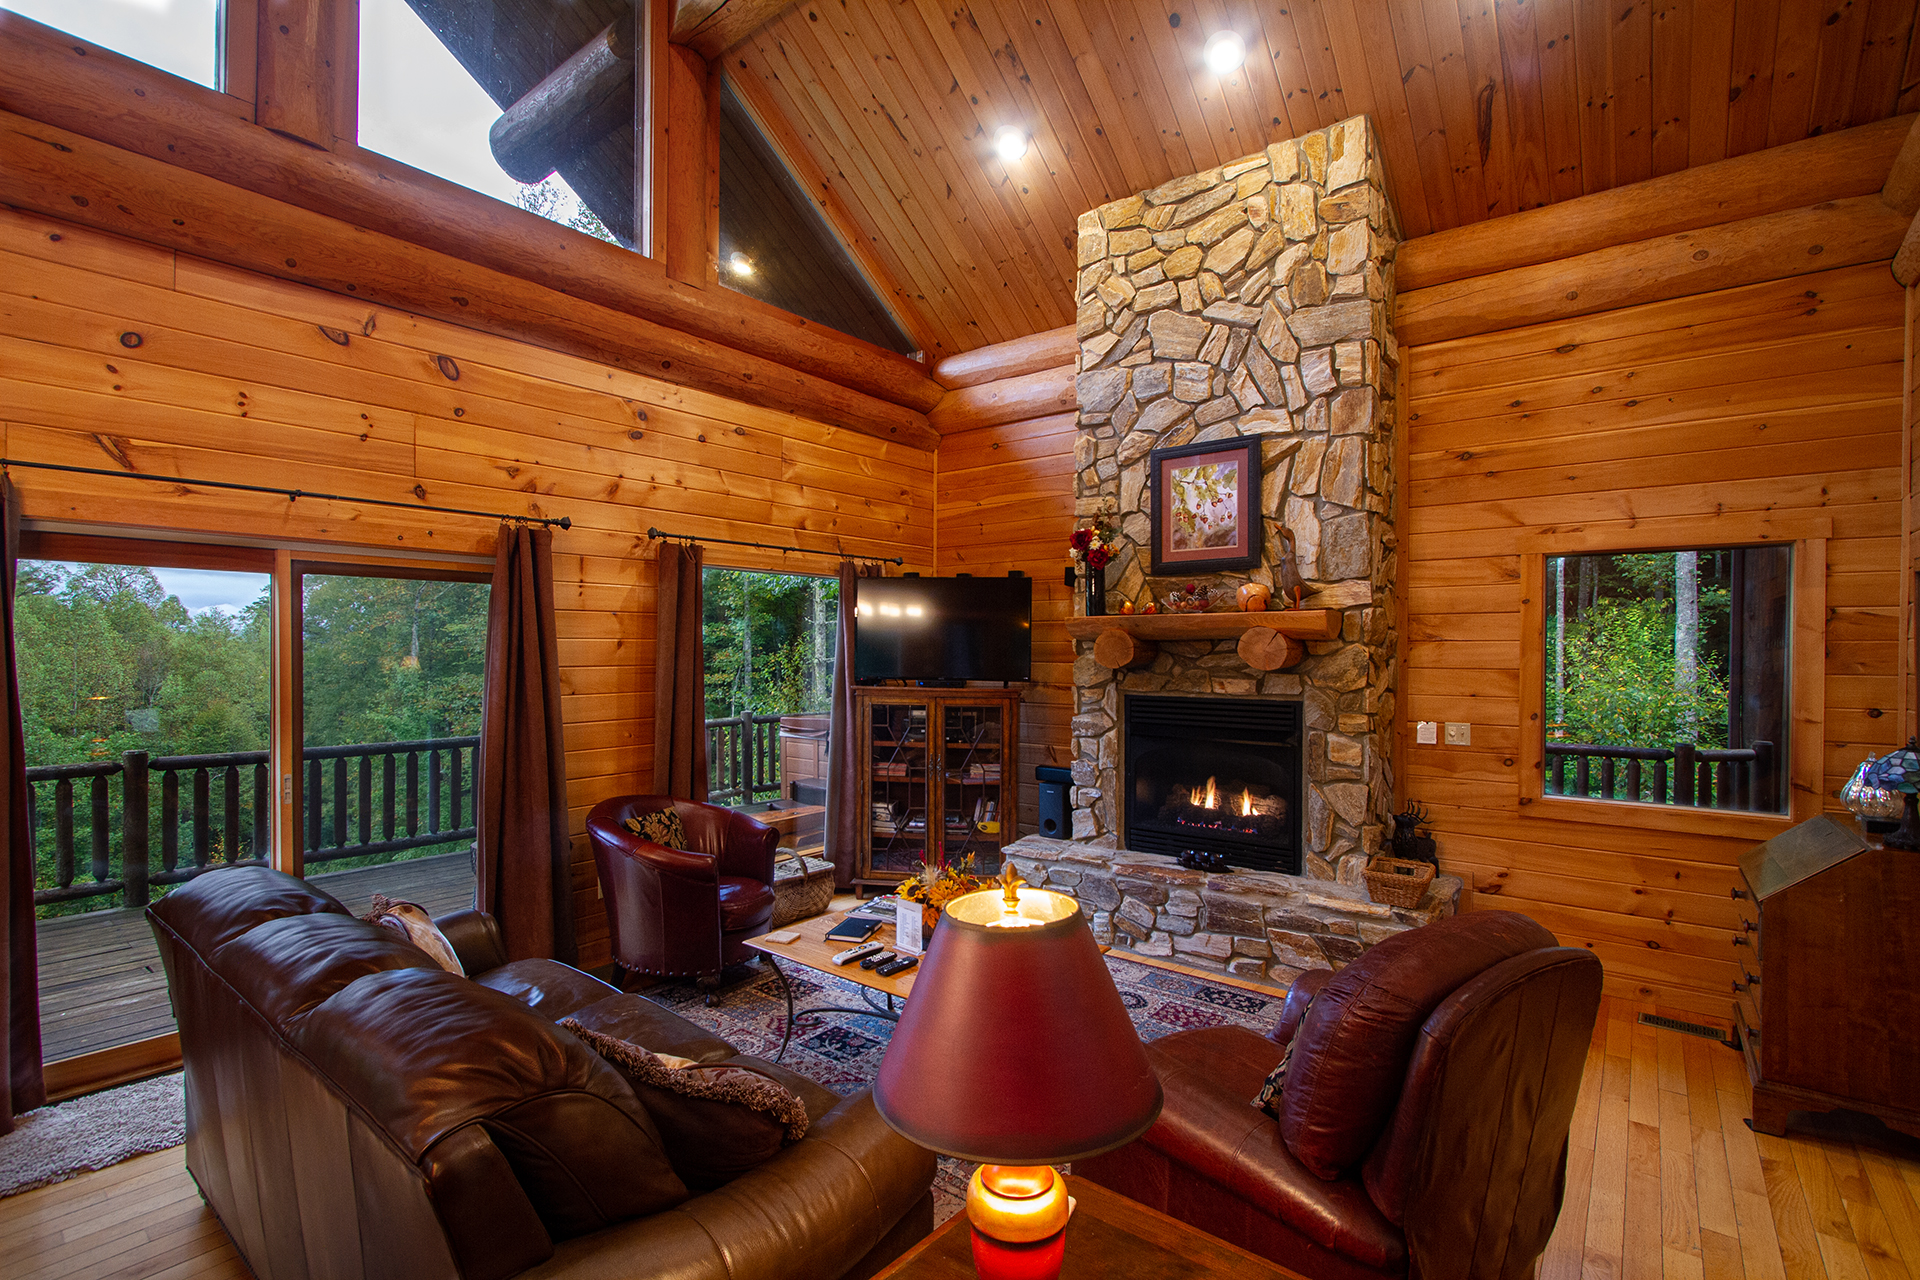 Acorn Bend Couples Escape Cabin Rental Info By Carolina Mountain